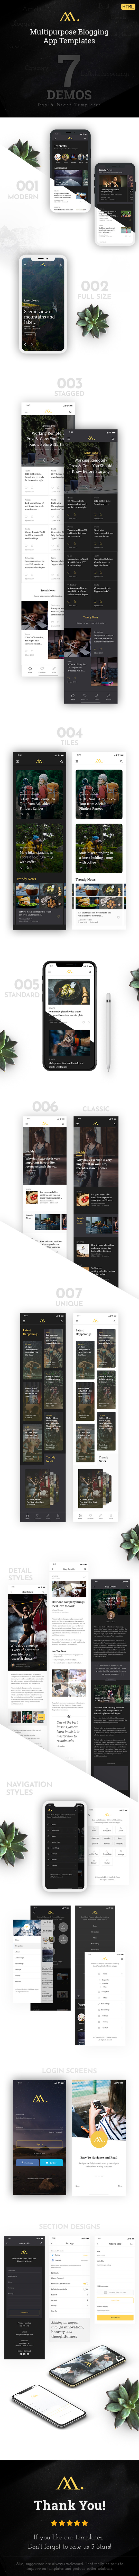 Mobile & App Templates - Blogs in HTML - 1